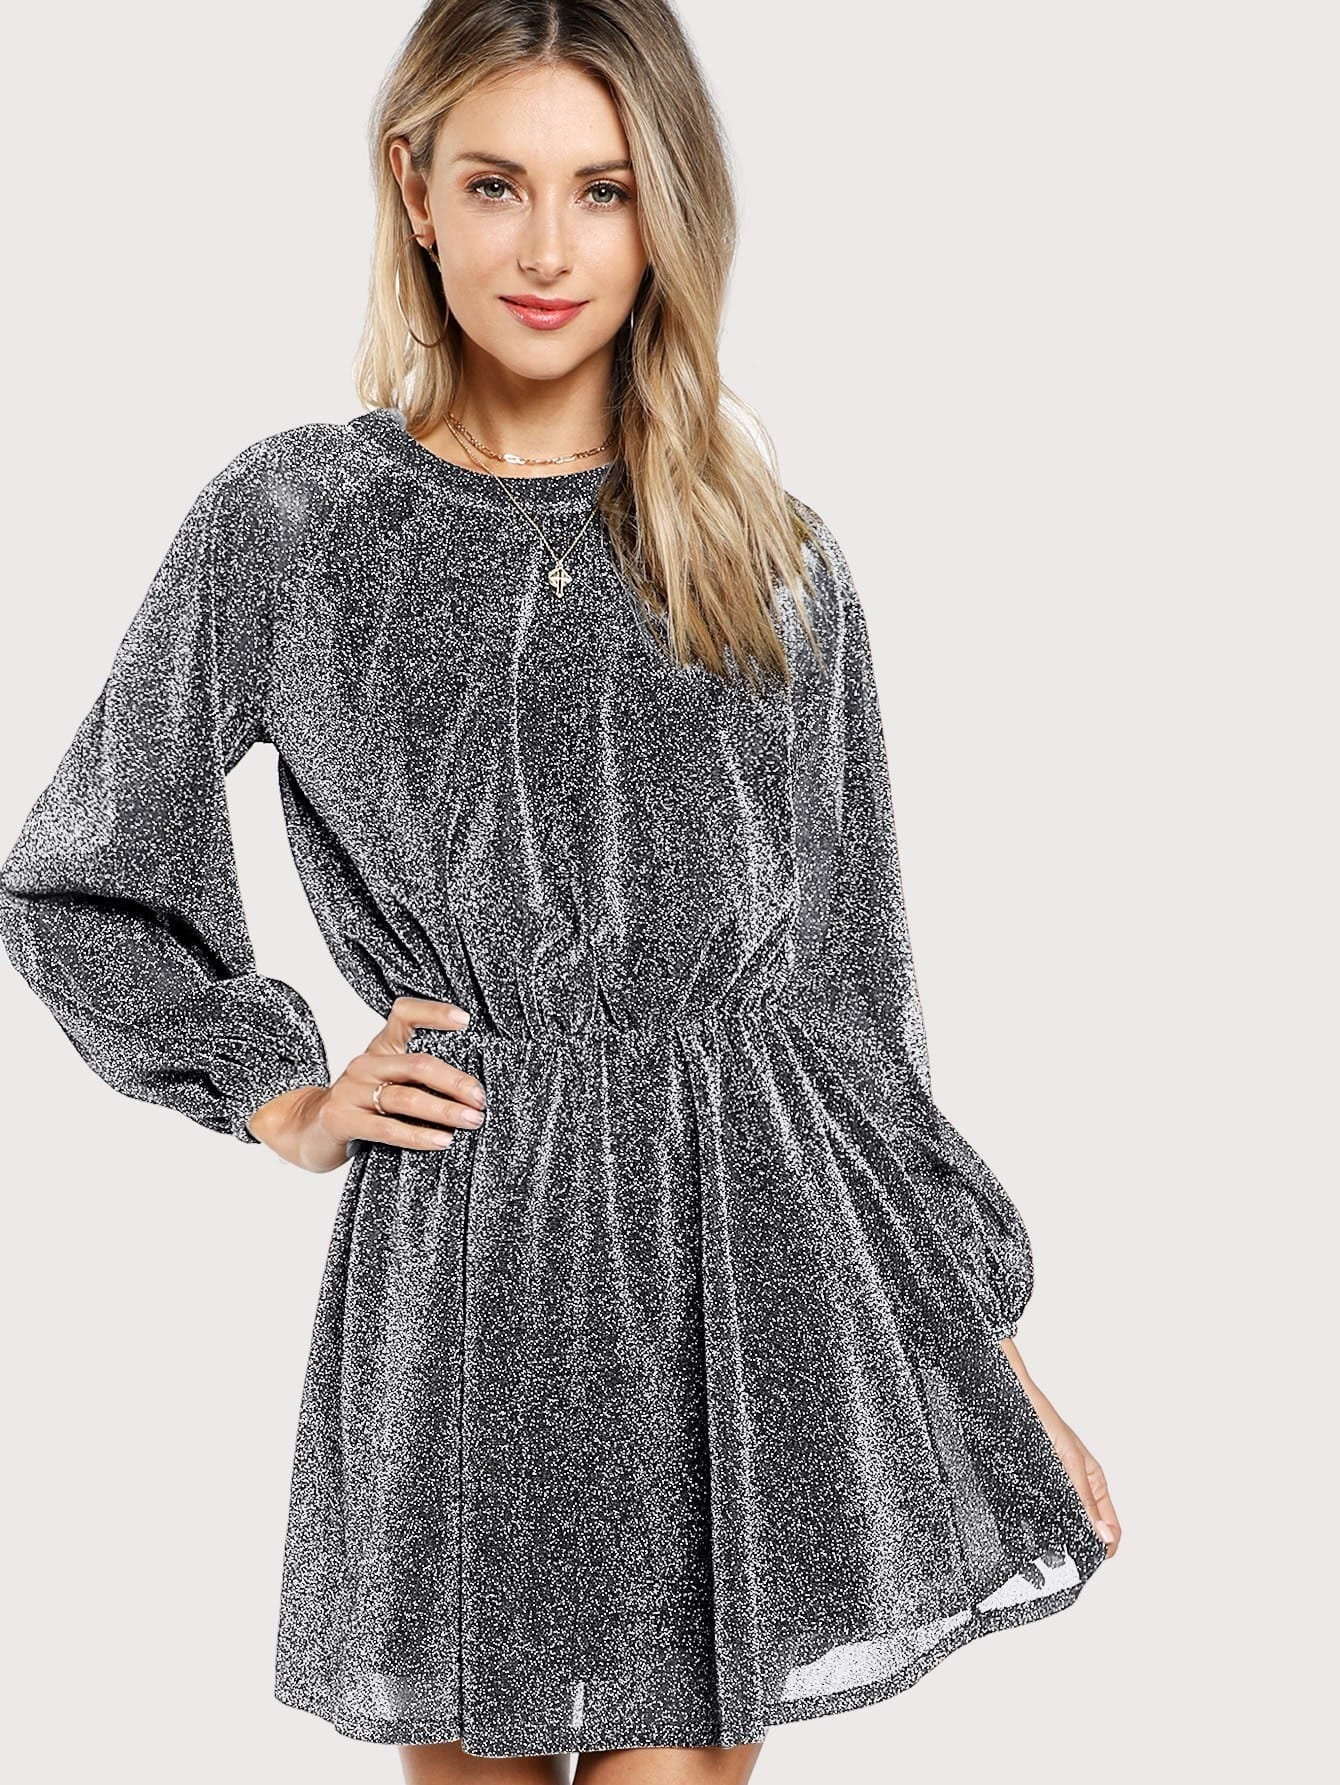 Bishop Sleeve Glitter Dress aiveesy 30g